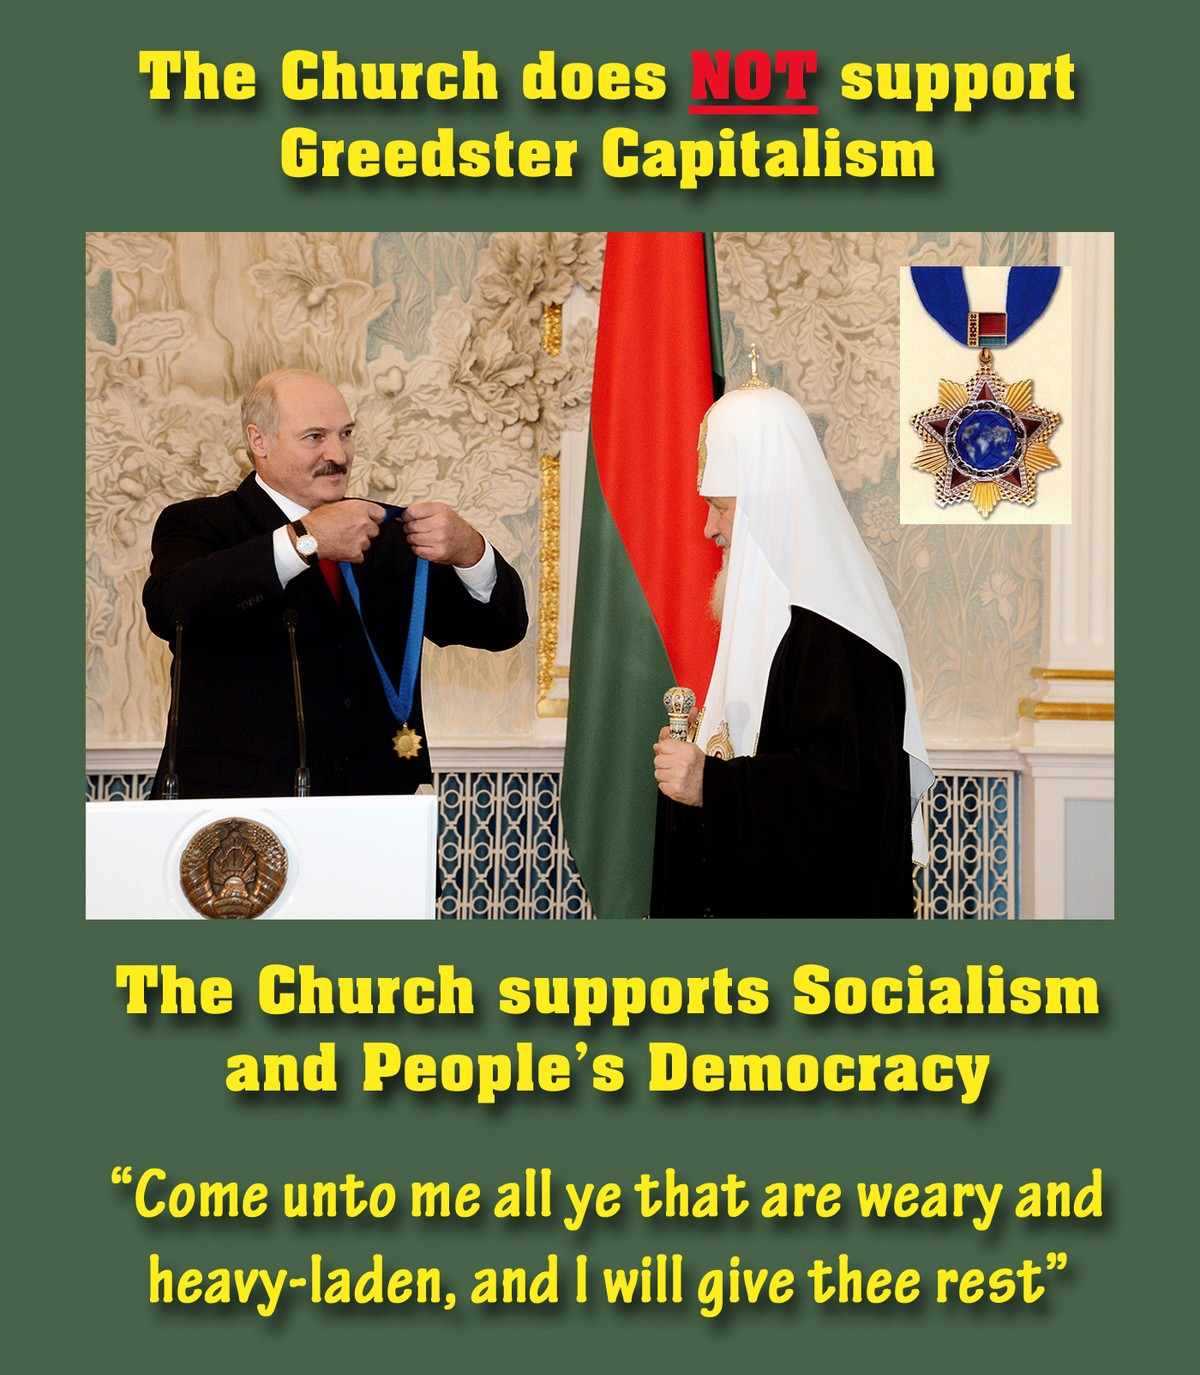 00 Patr Kirill and Pres Lukashenko 01a 14.10.12